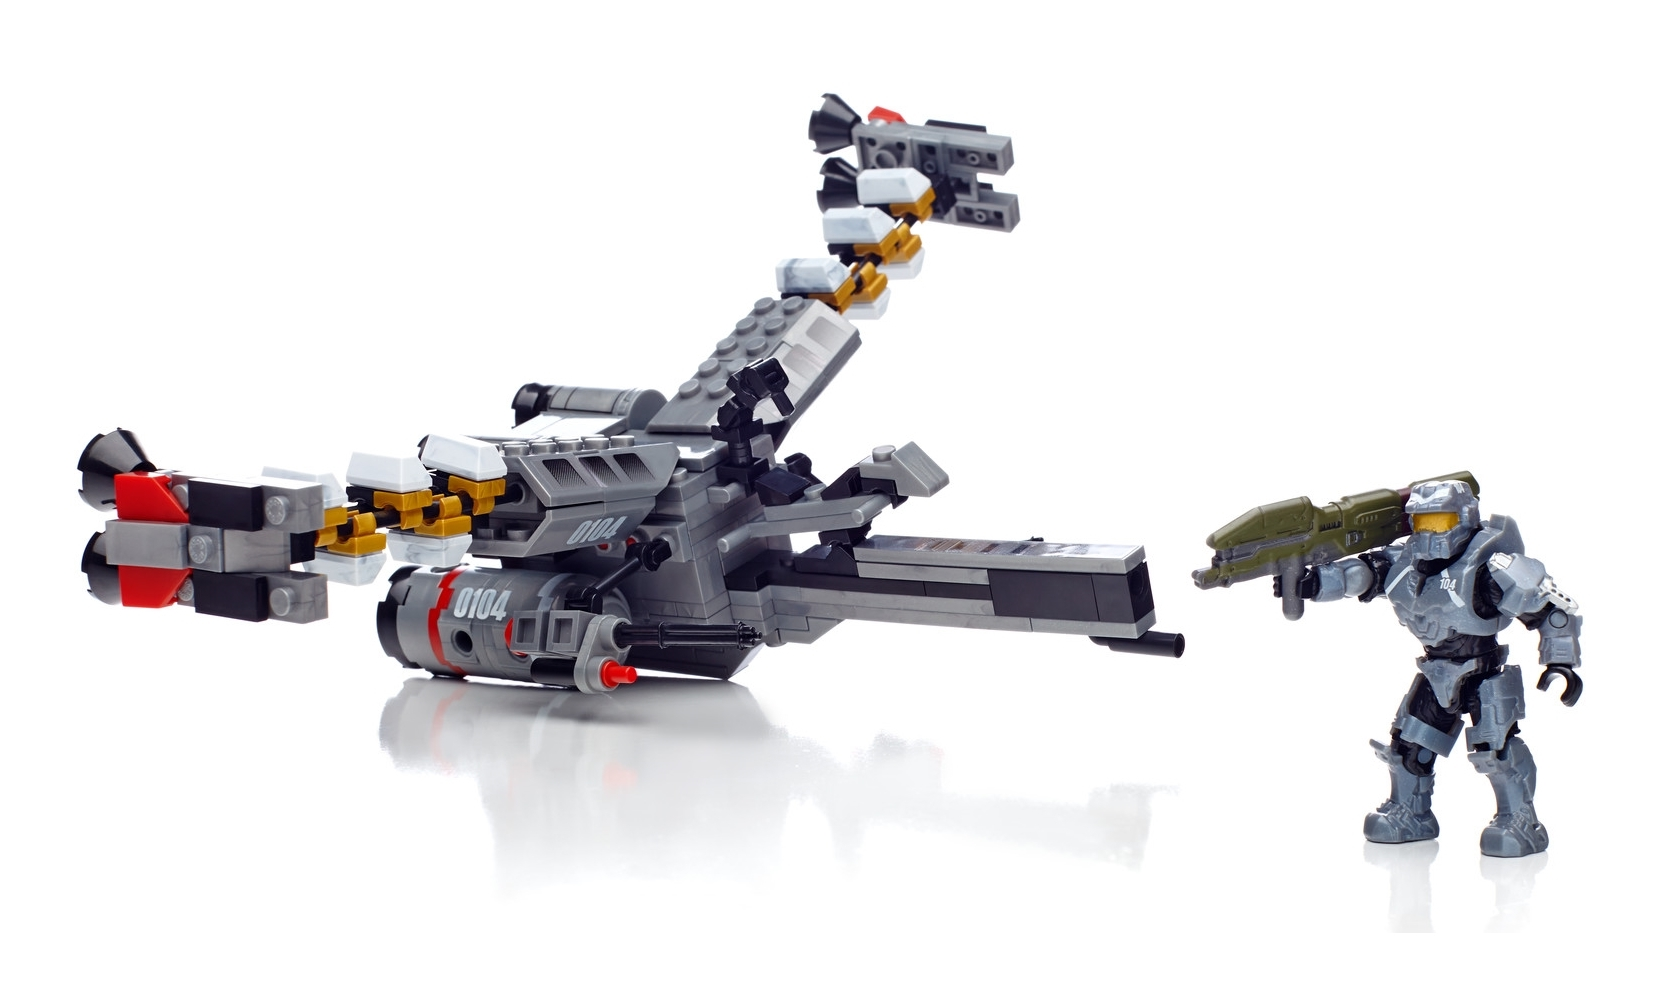 EVA Booster Frame featuring Halo Mega Bloks Fred figure with weapon, building block toy set 97453.